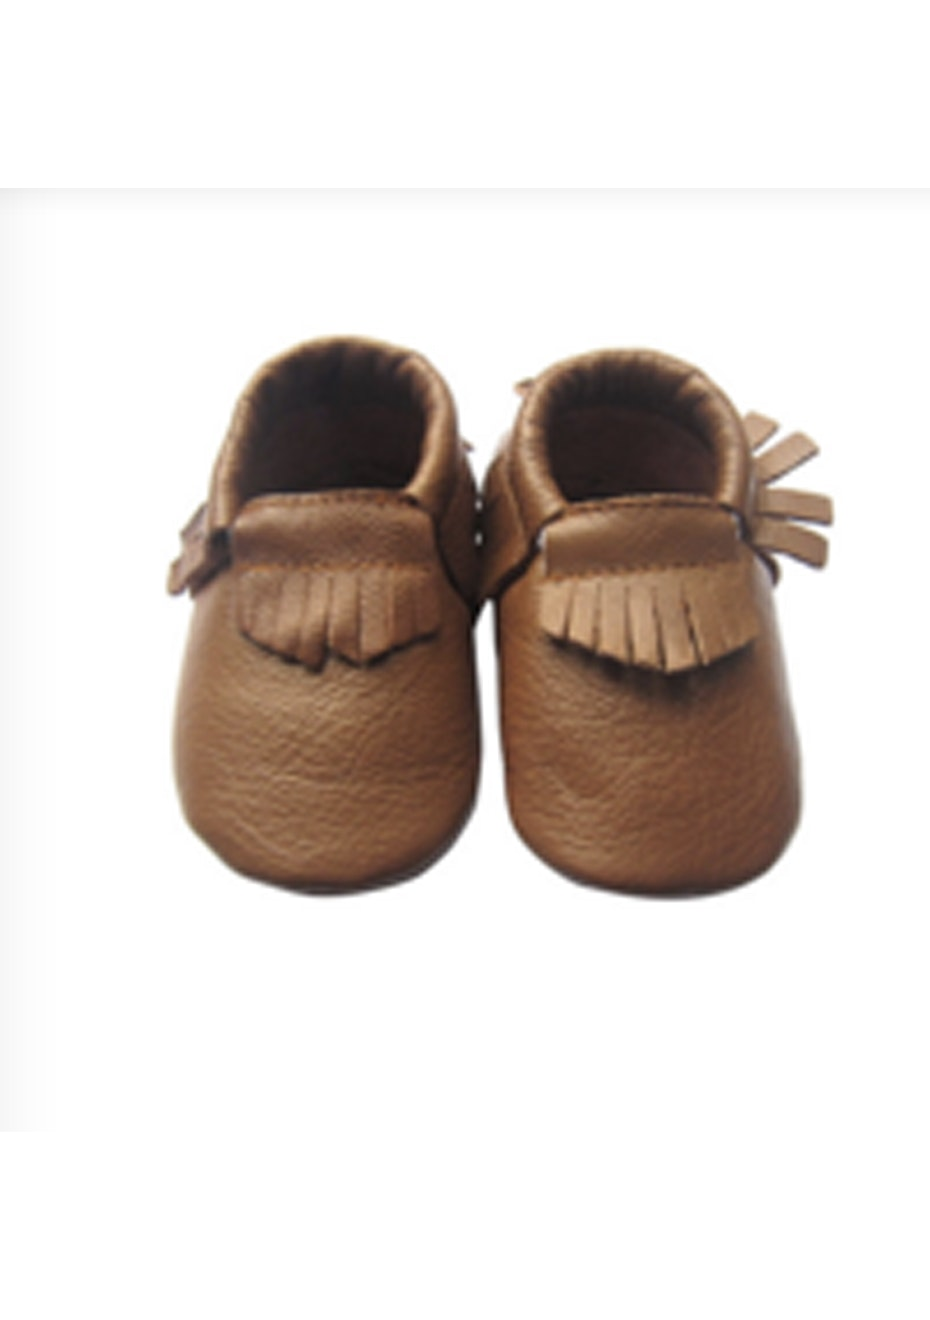 Baby  Leather Shoes - Light Brown